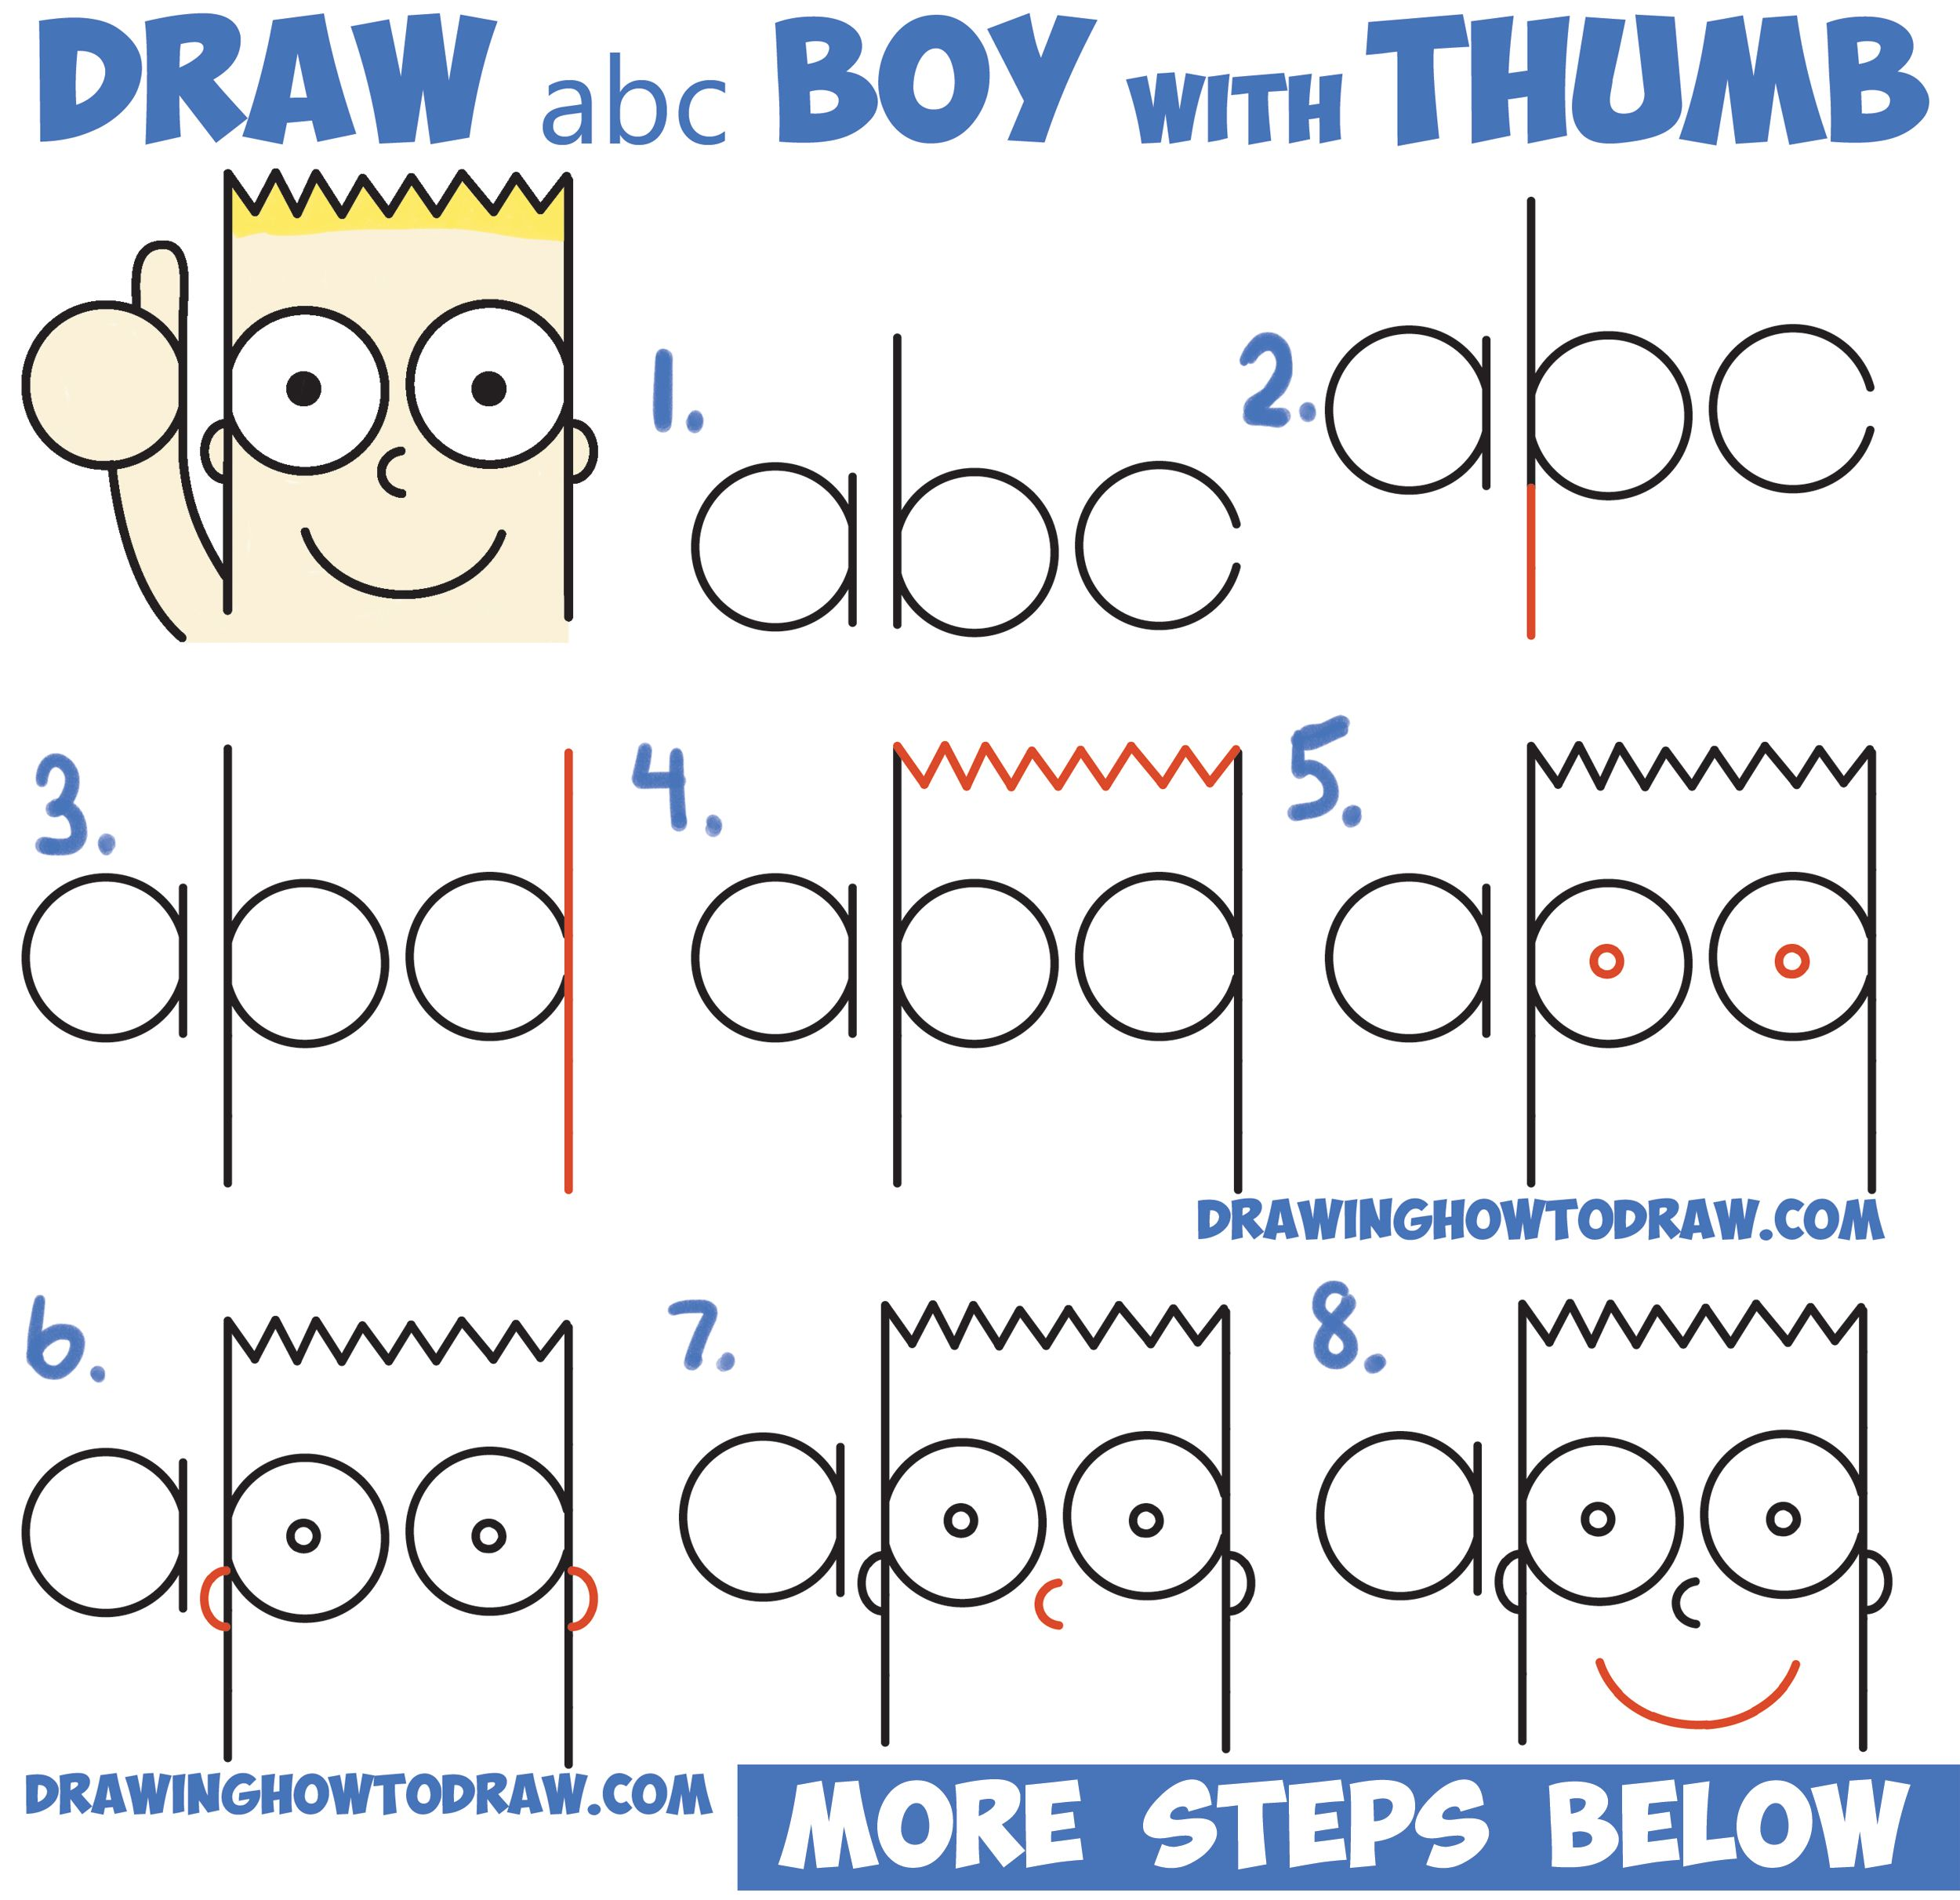 """Complete umbrella drawing in just 9 easy steps! How to Draw Cute Cartoon Boy / Kid With Thumb Up from """"abc ..."""